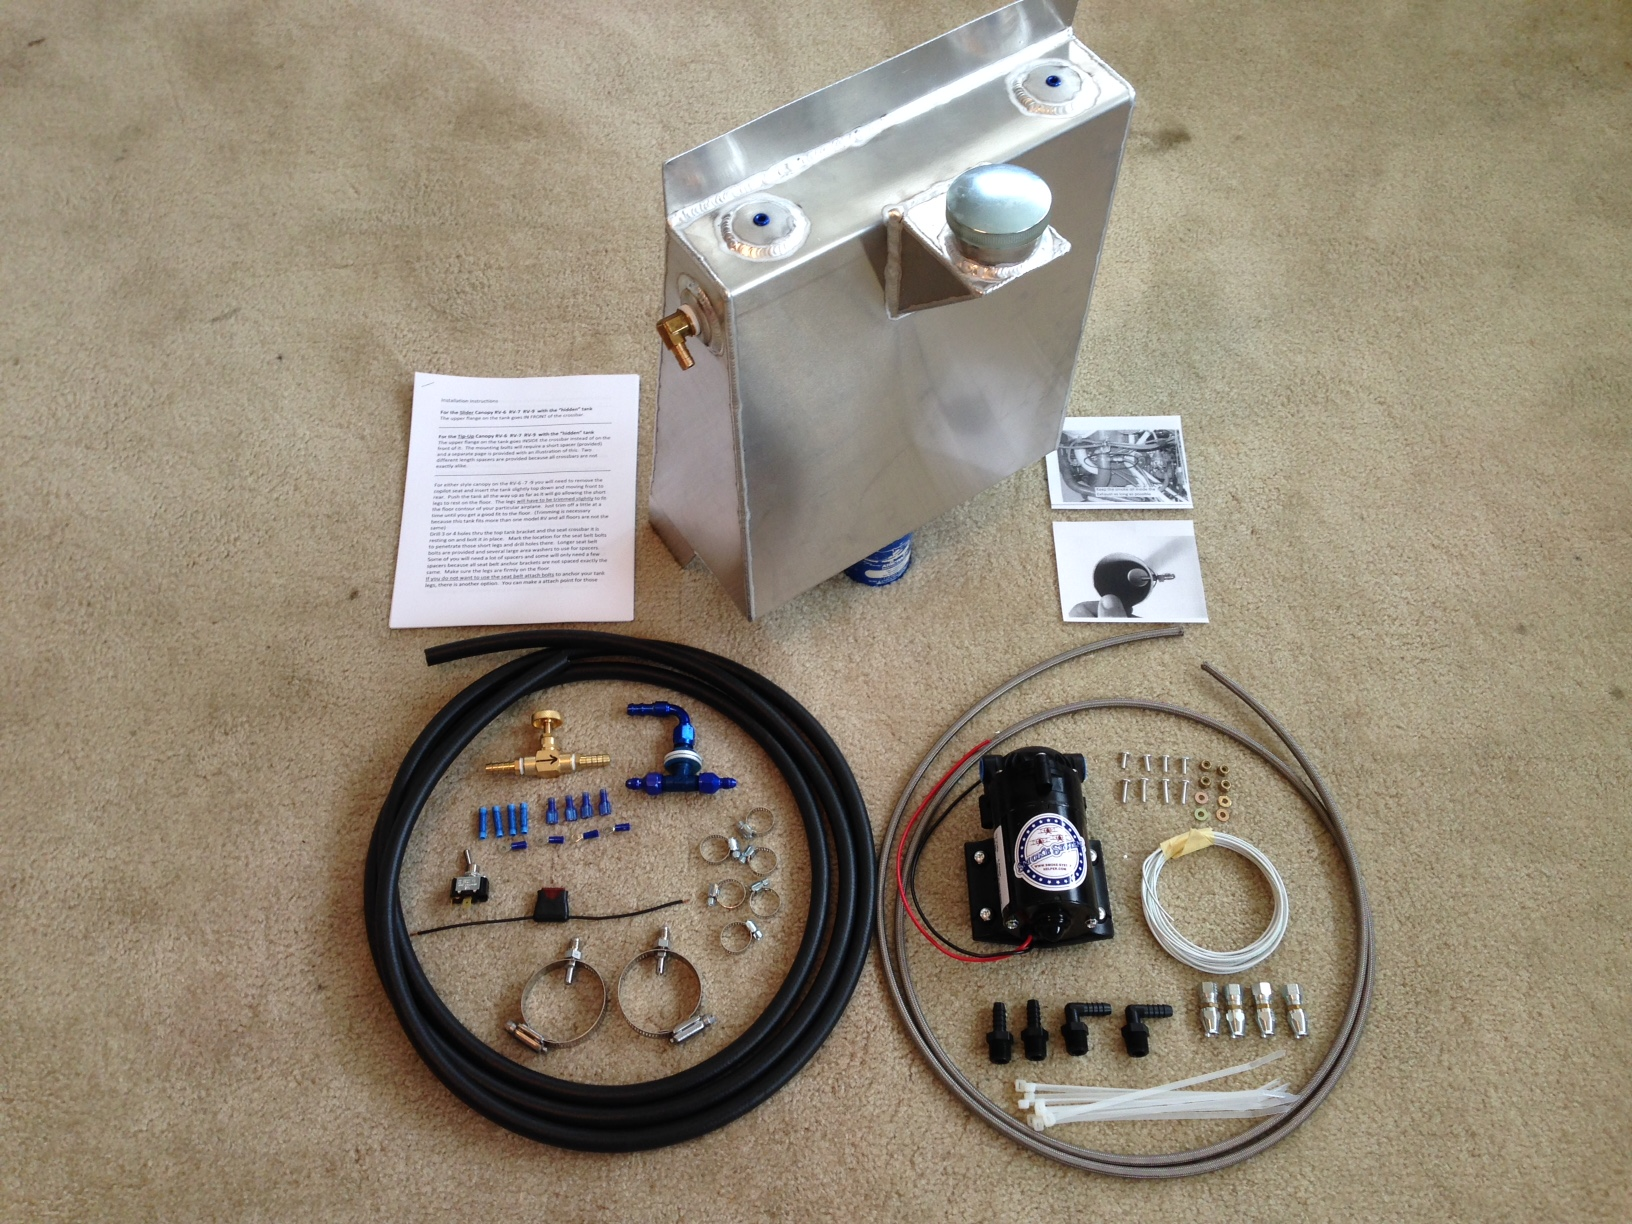 Complete kit for RV-6-7-9    4.25 gallons